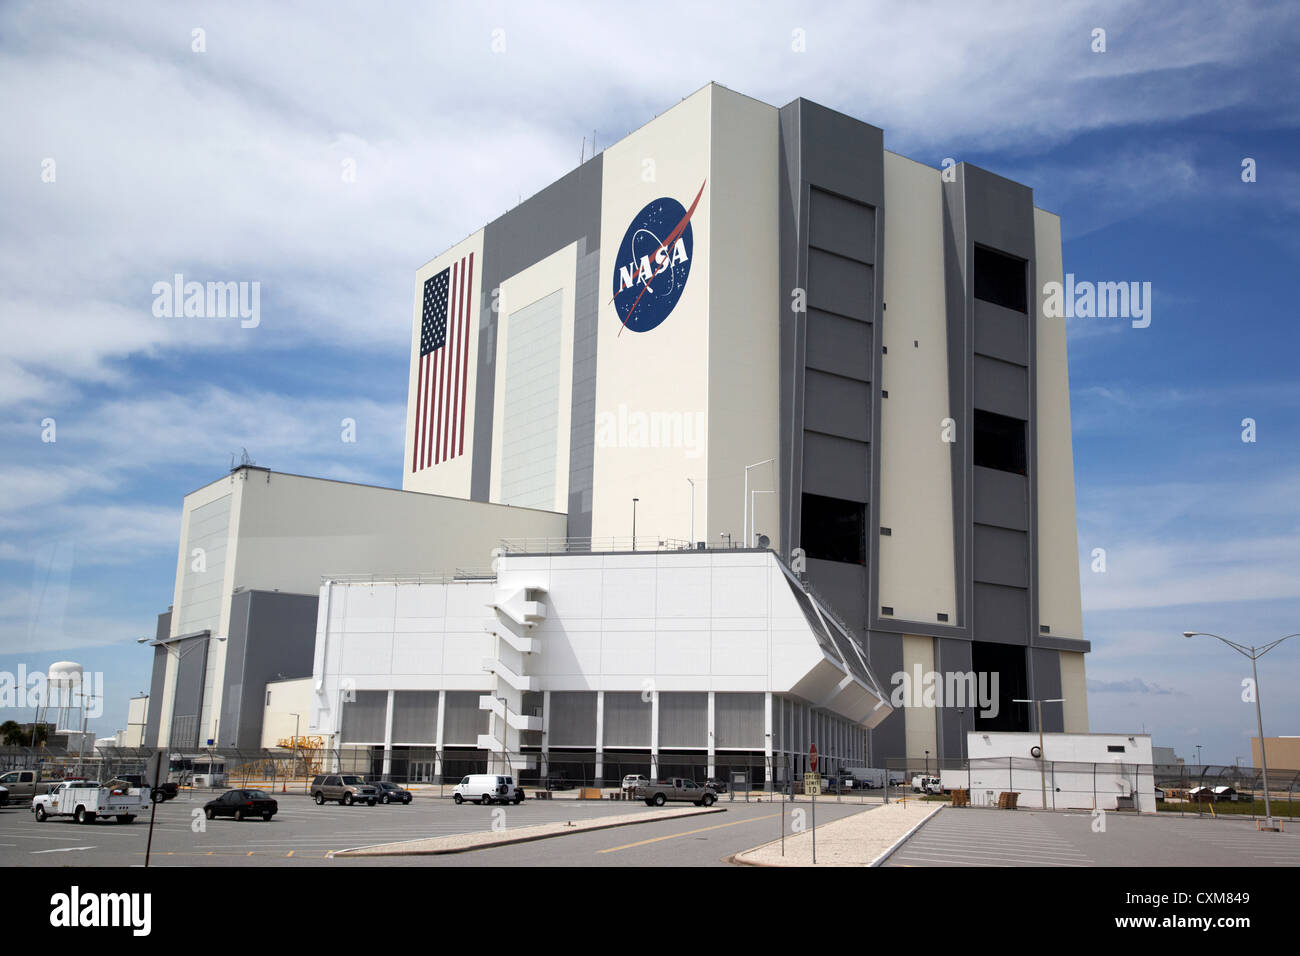 exterior of the vab vehicle assembly building and launch control center Kennedy Space Center Florida USA - Stock Image